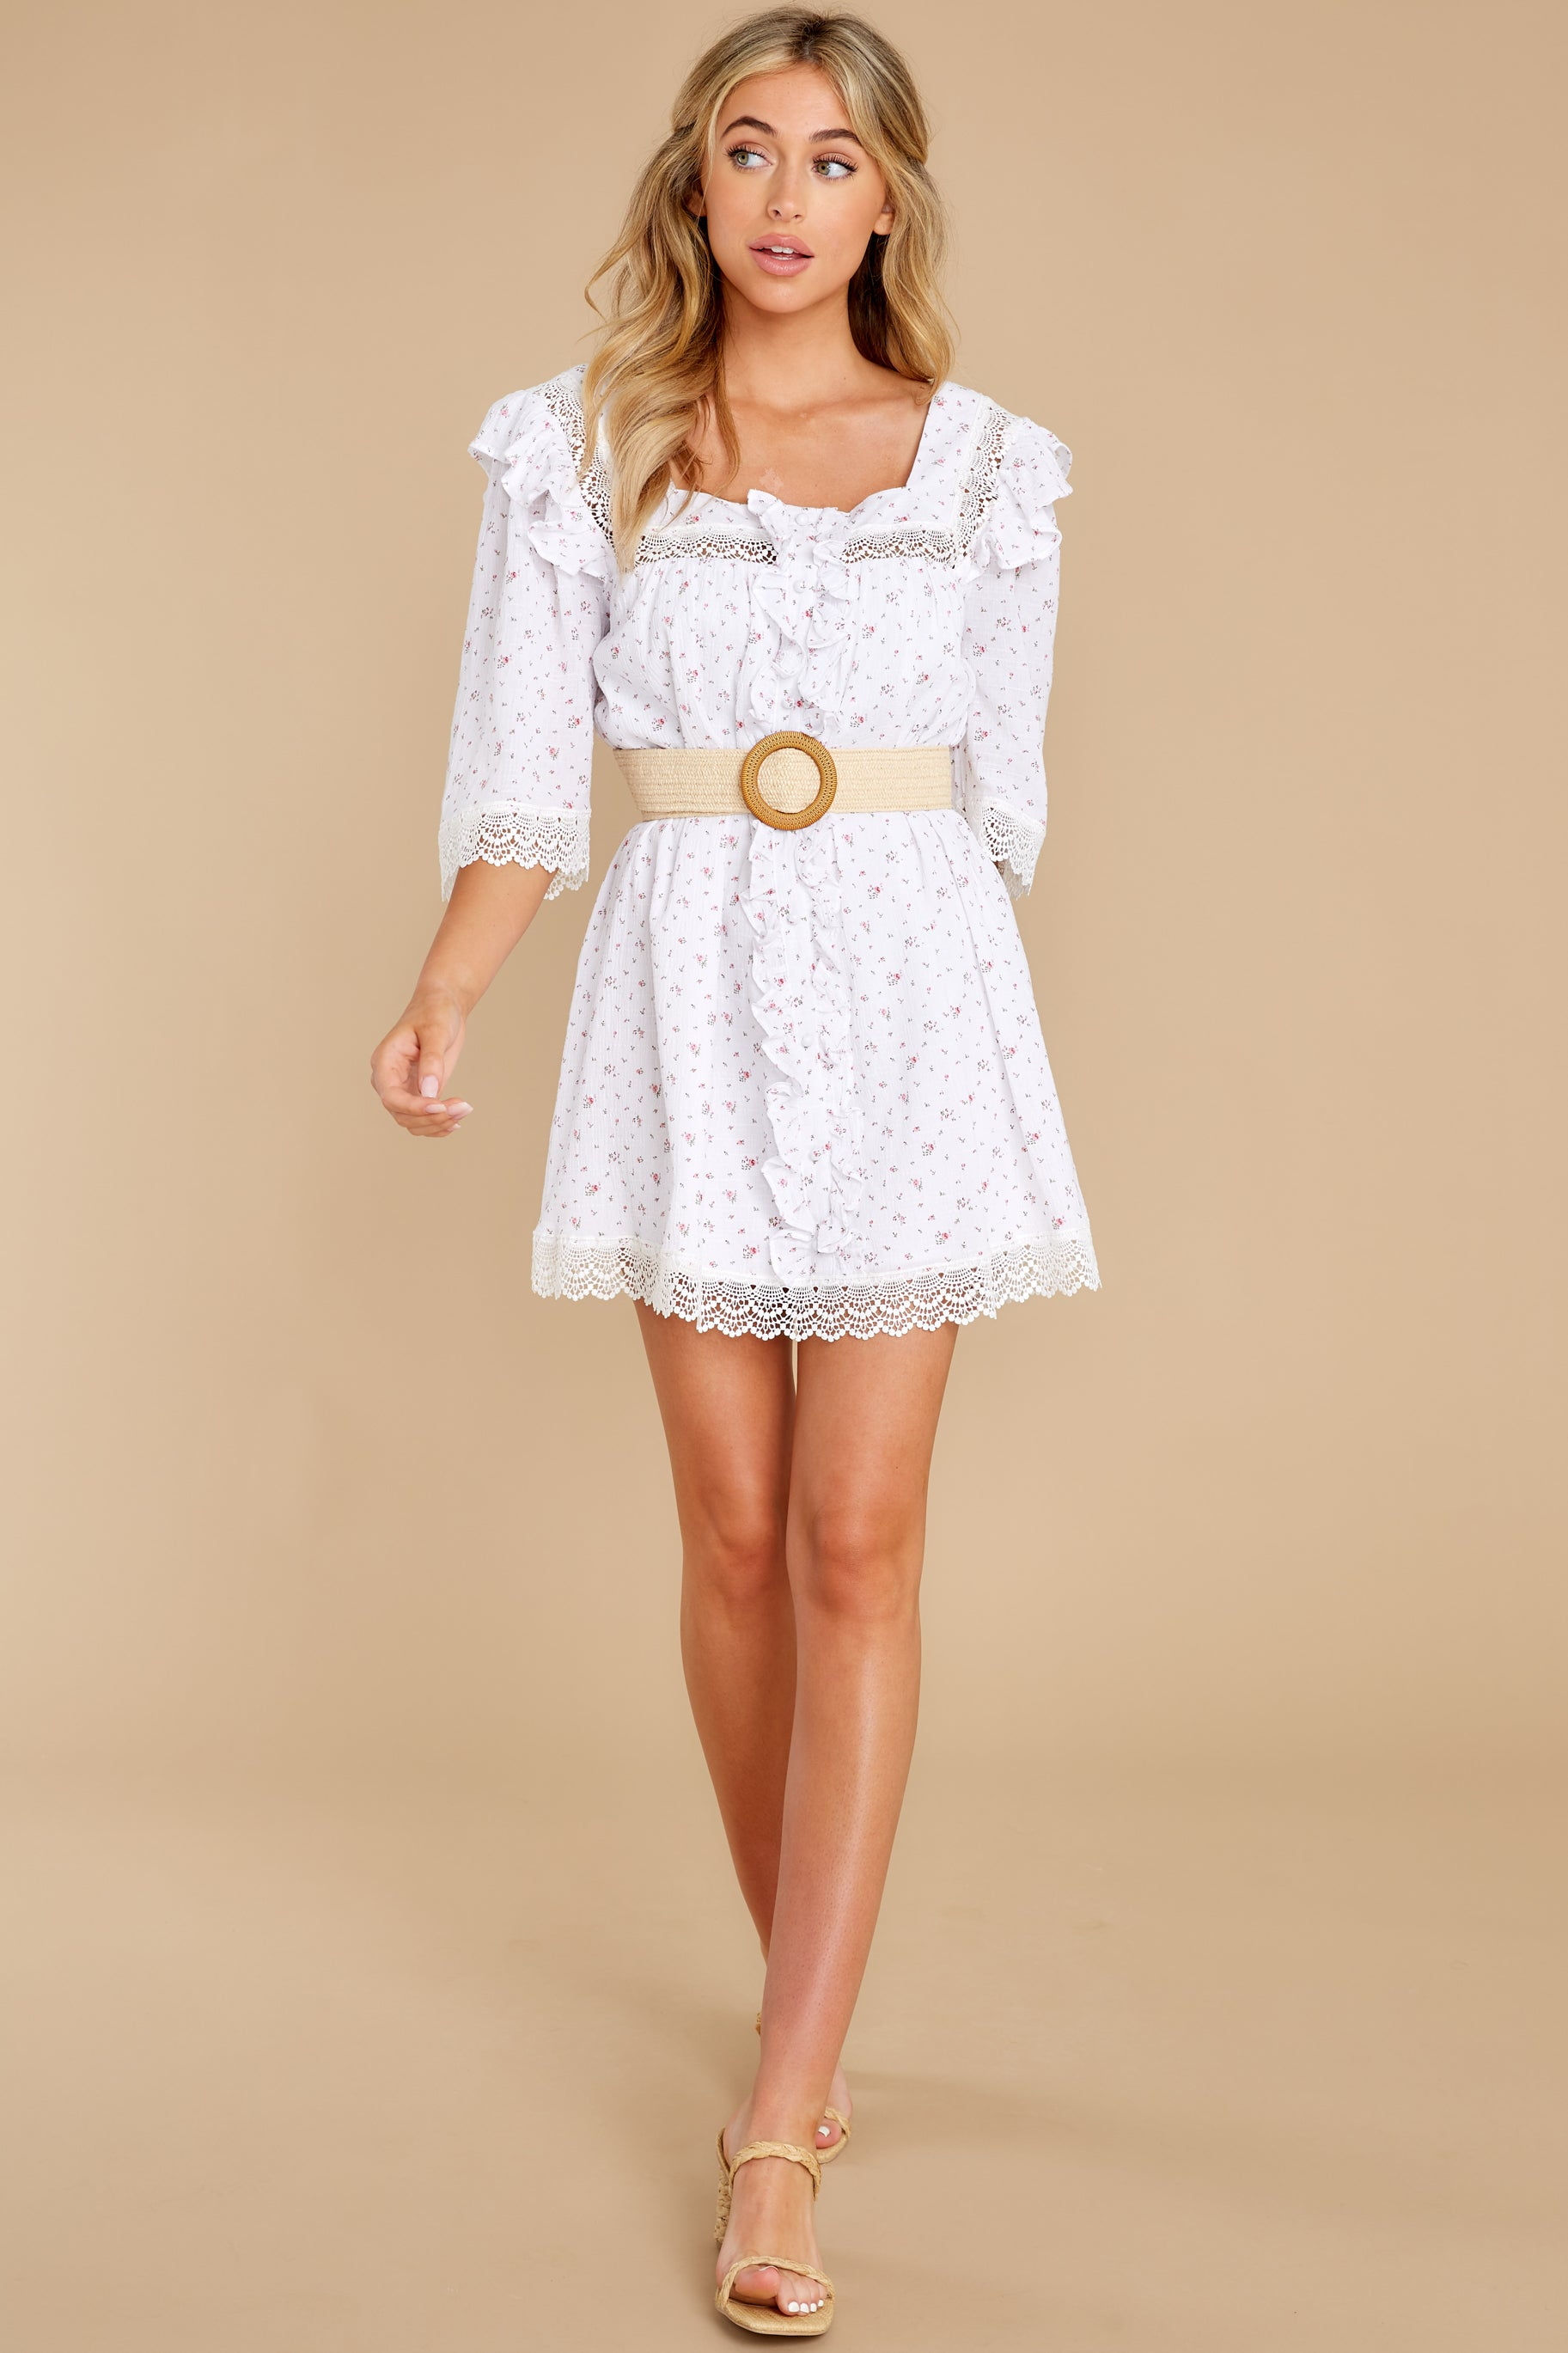 4 A Good Romance White Print Dress at reddress.com